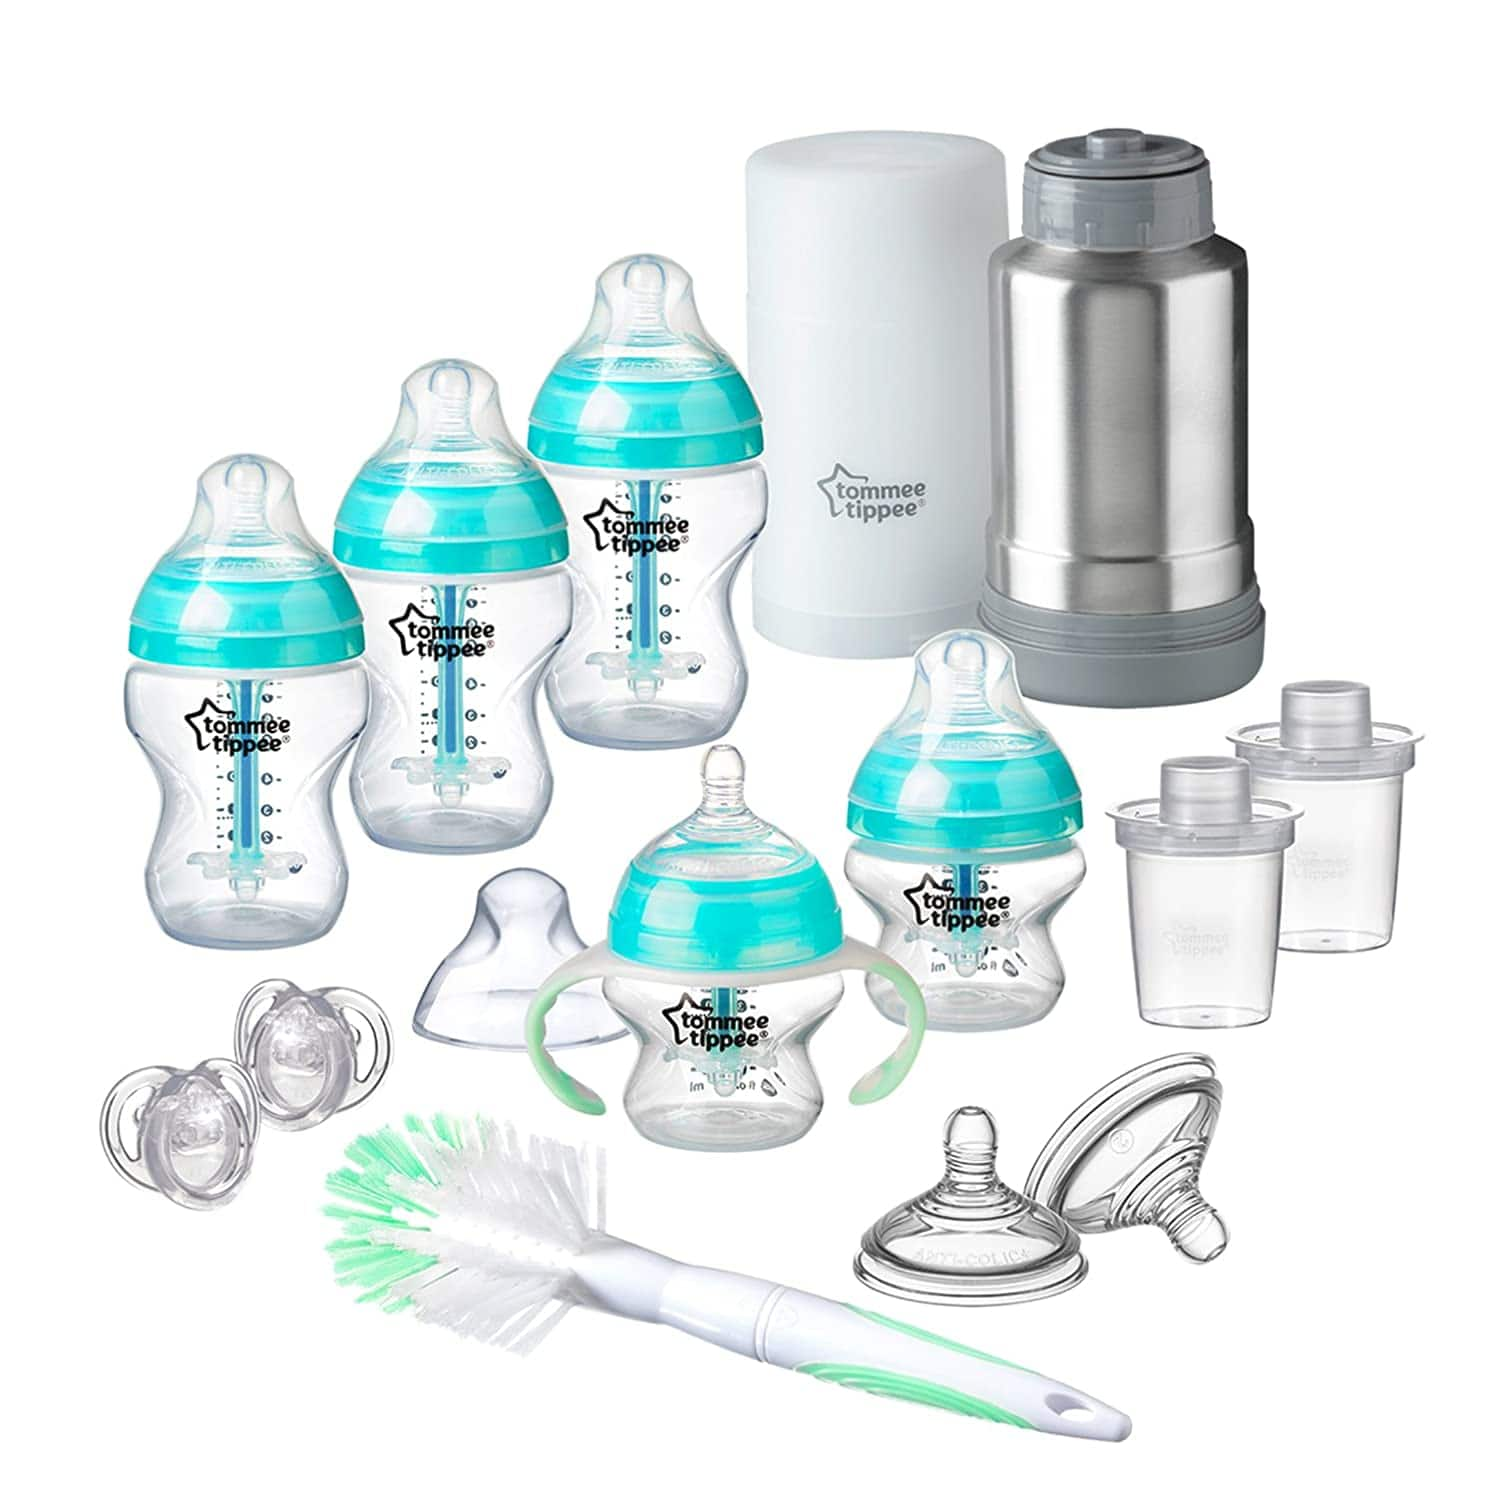 Tommee Tippee Advanced Anti Colic Newborn Baby Bottle Feeding Gift Set $33 + Free Shipping w/ Walmart+ or $35 or Free Shipping w/ Prime or $25+